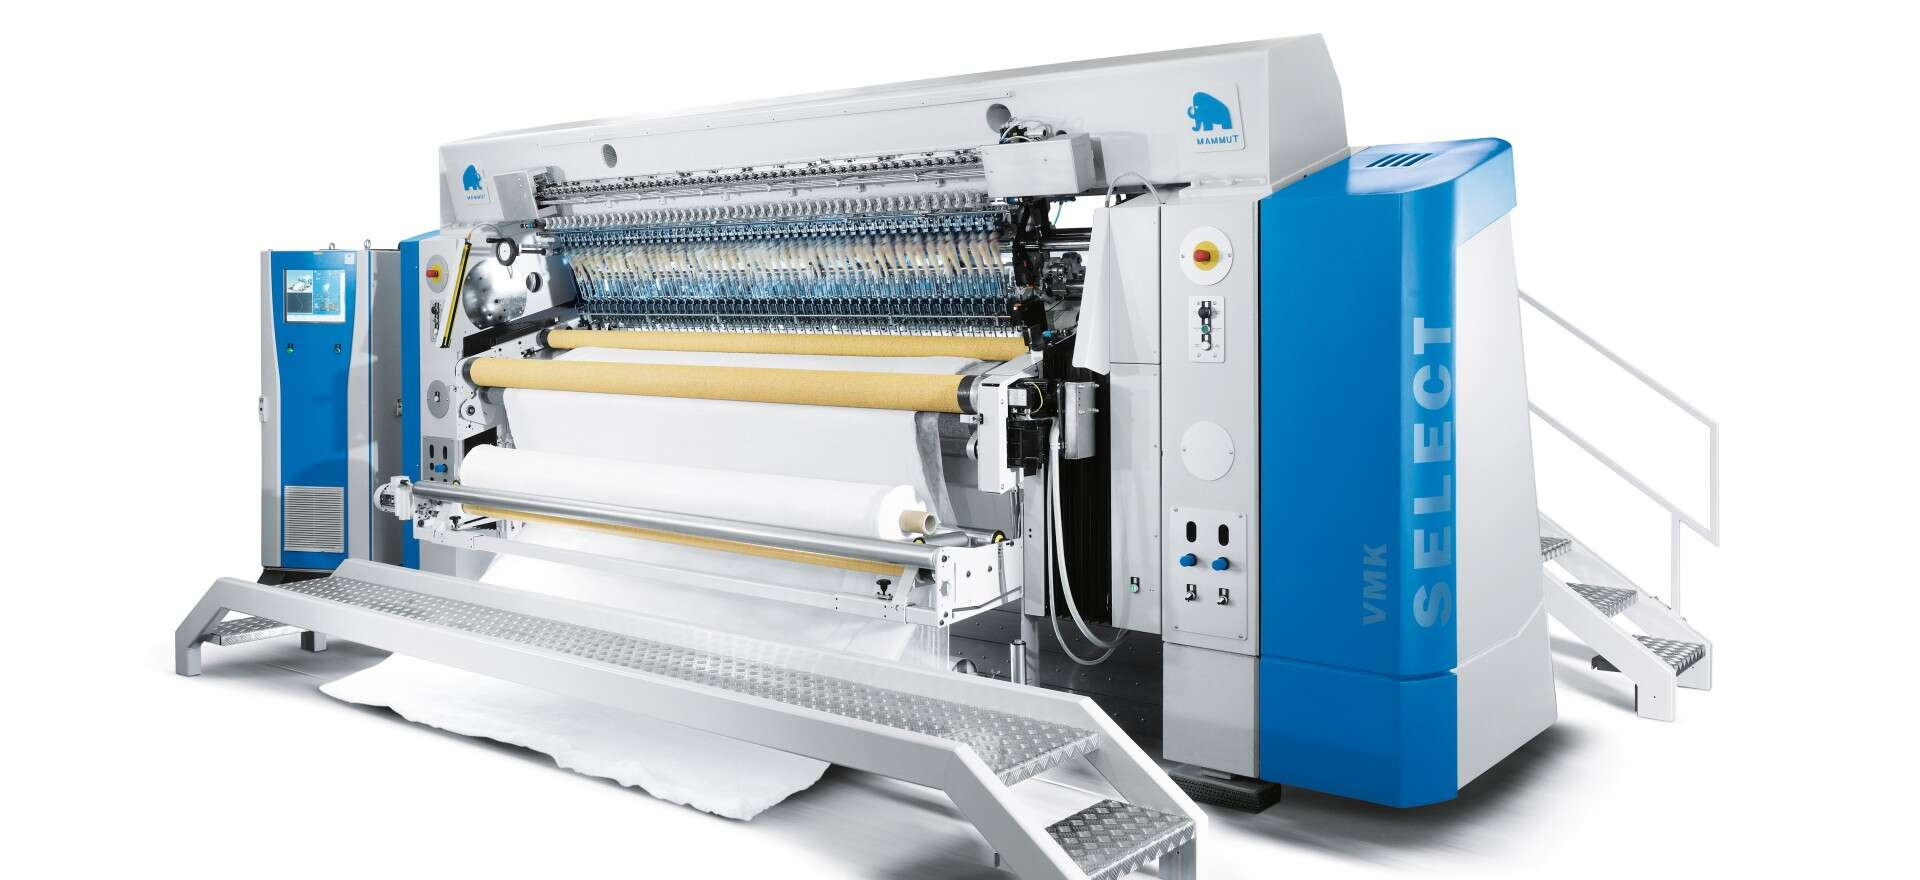 VMK Select: the latest multi-needle quilting machine is setting standards throughout the industry thanks to customised cylinder/valve combinations from Festo.